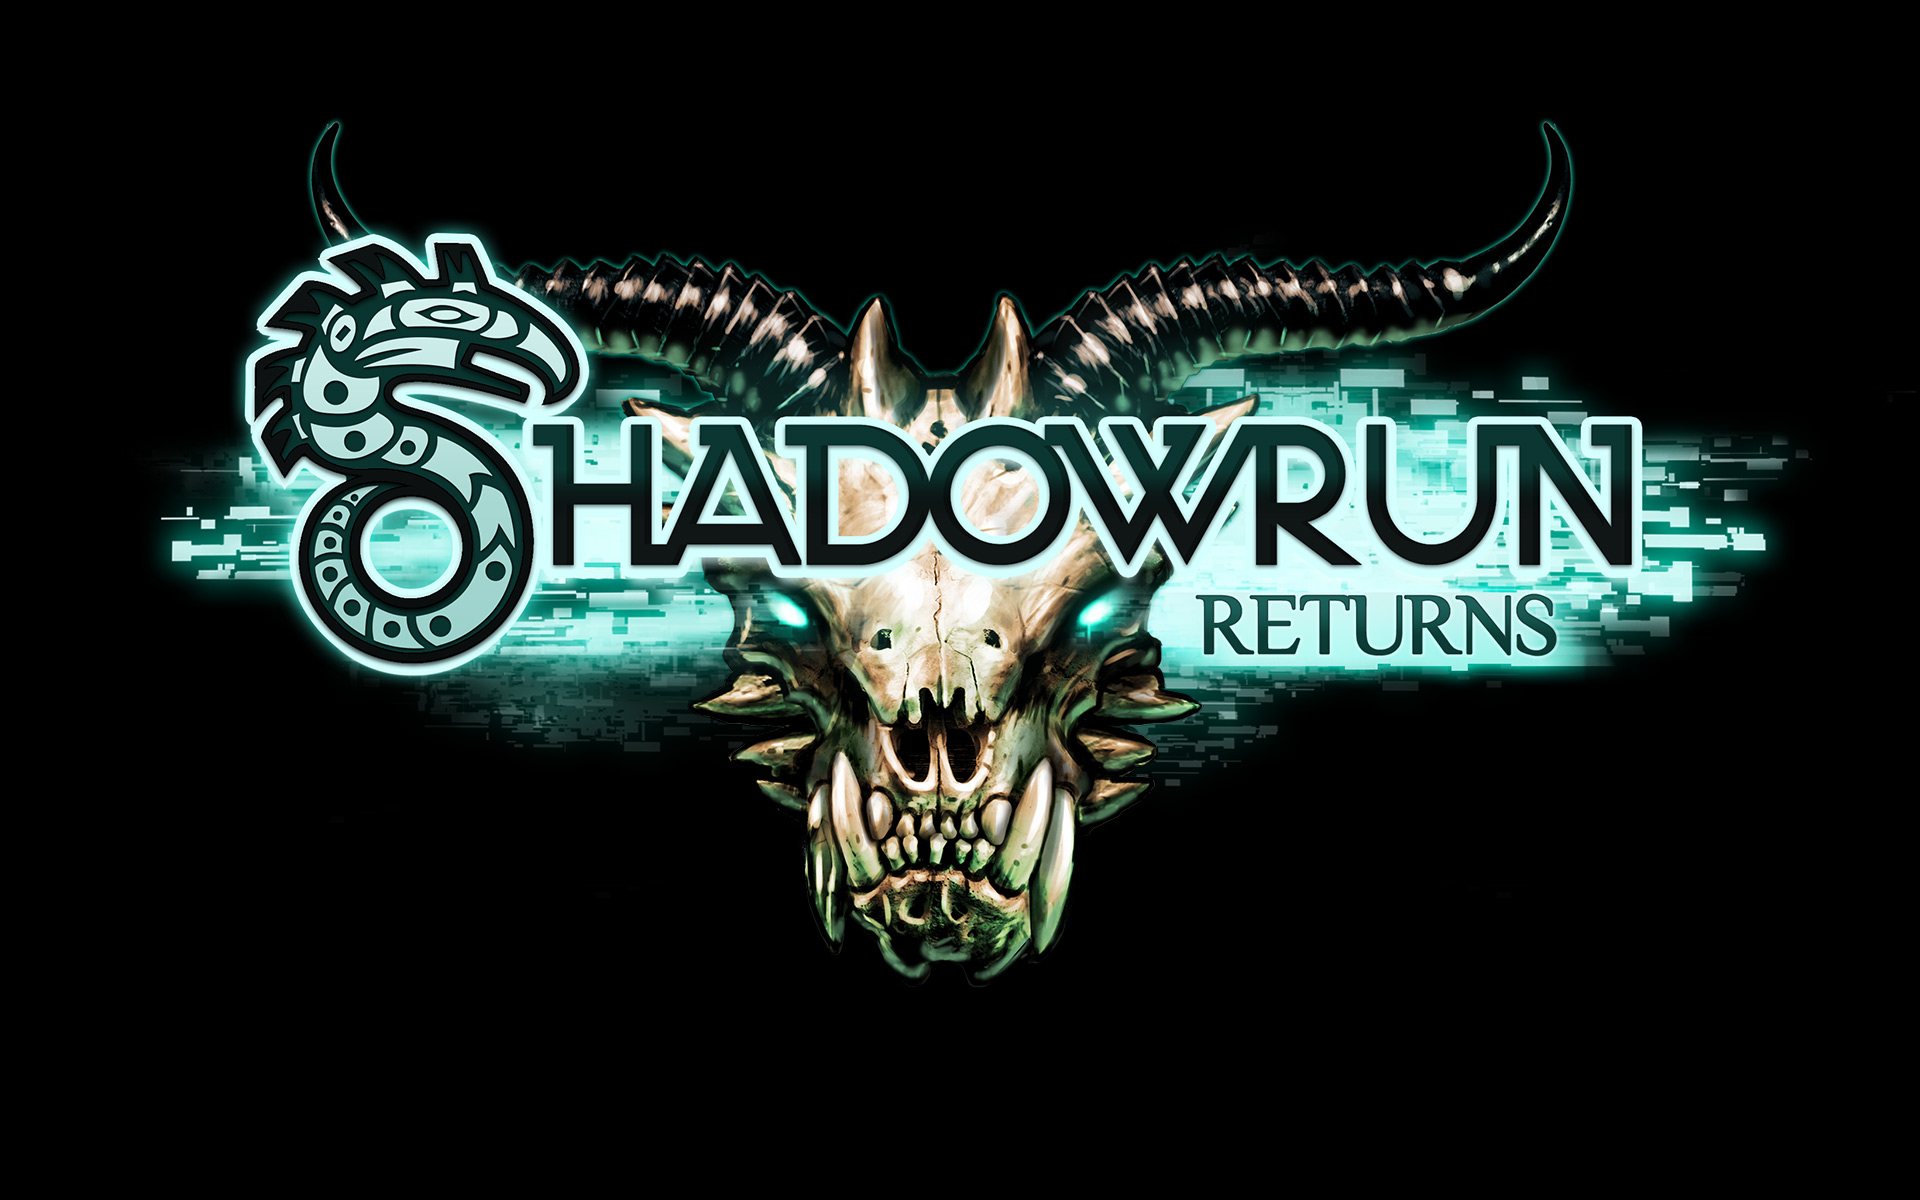 shadowrun returning